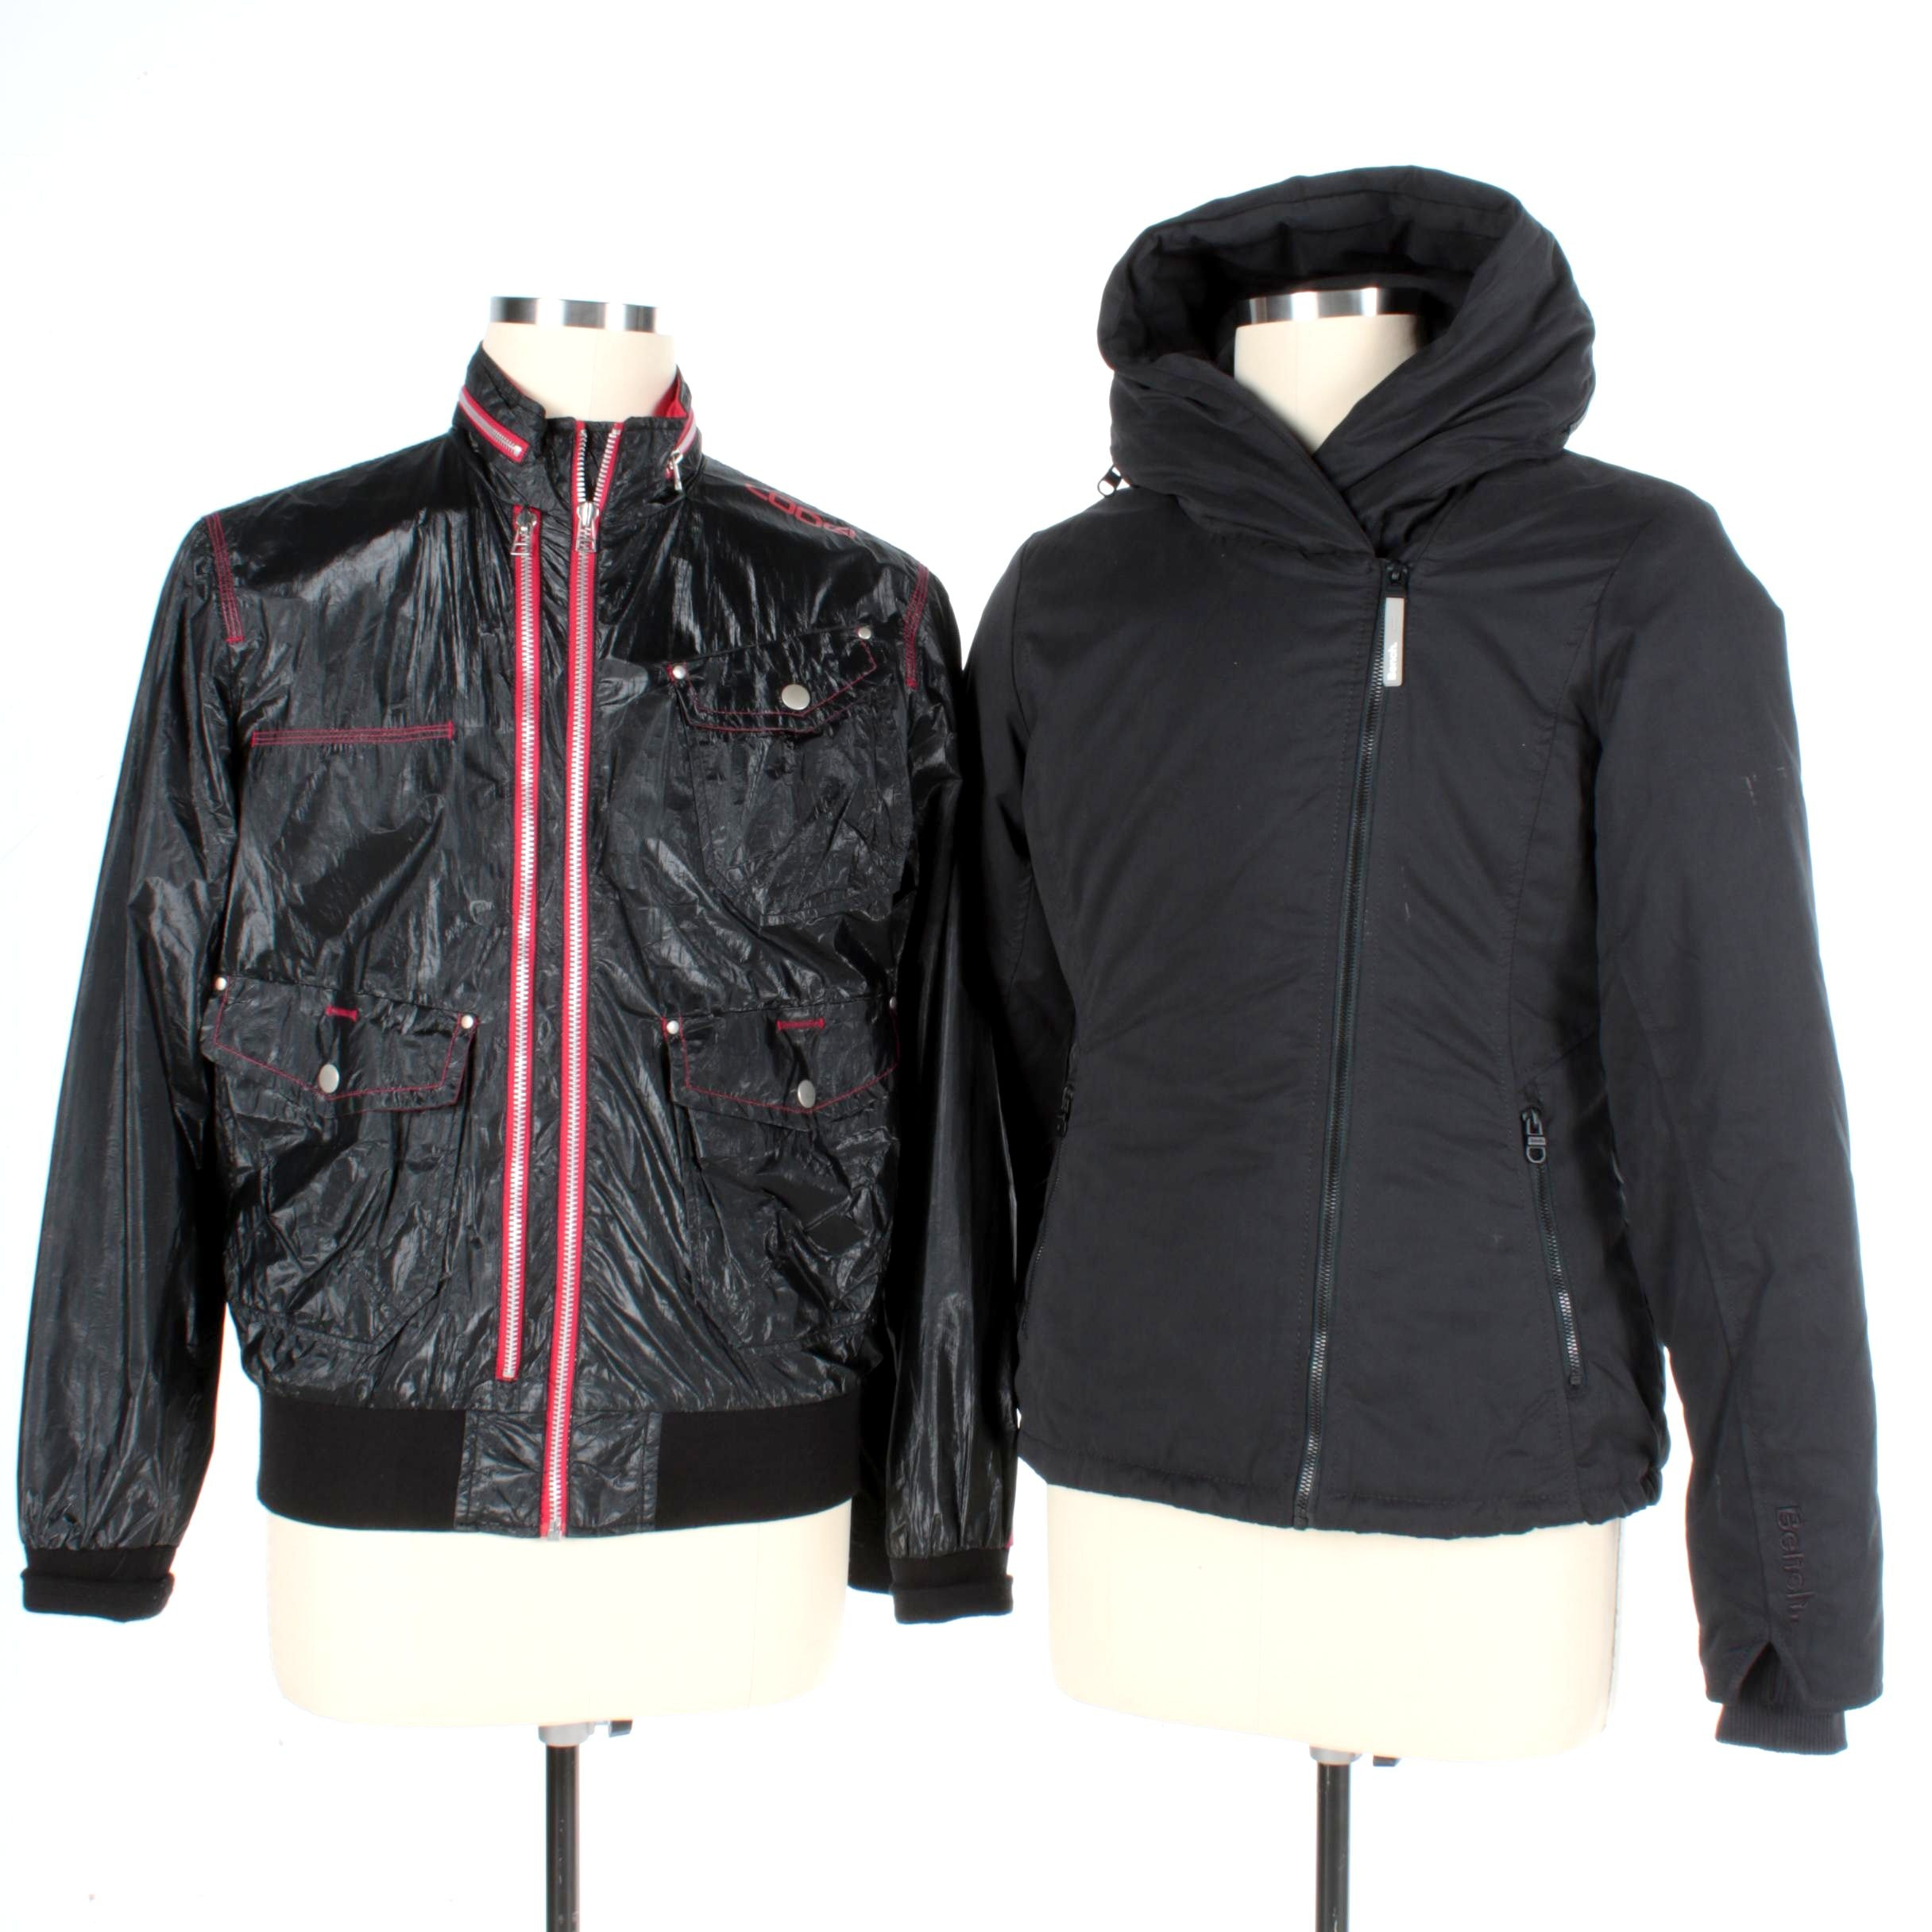 Women's Jackets Including C69 Coogi and Bench